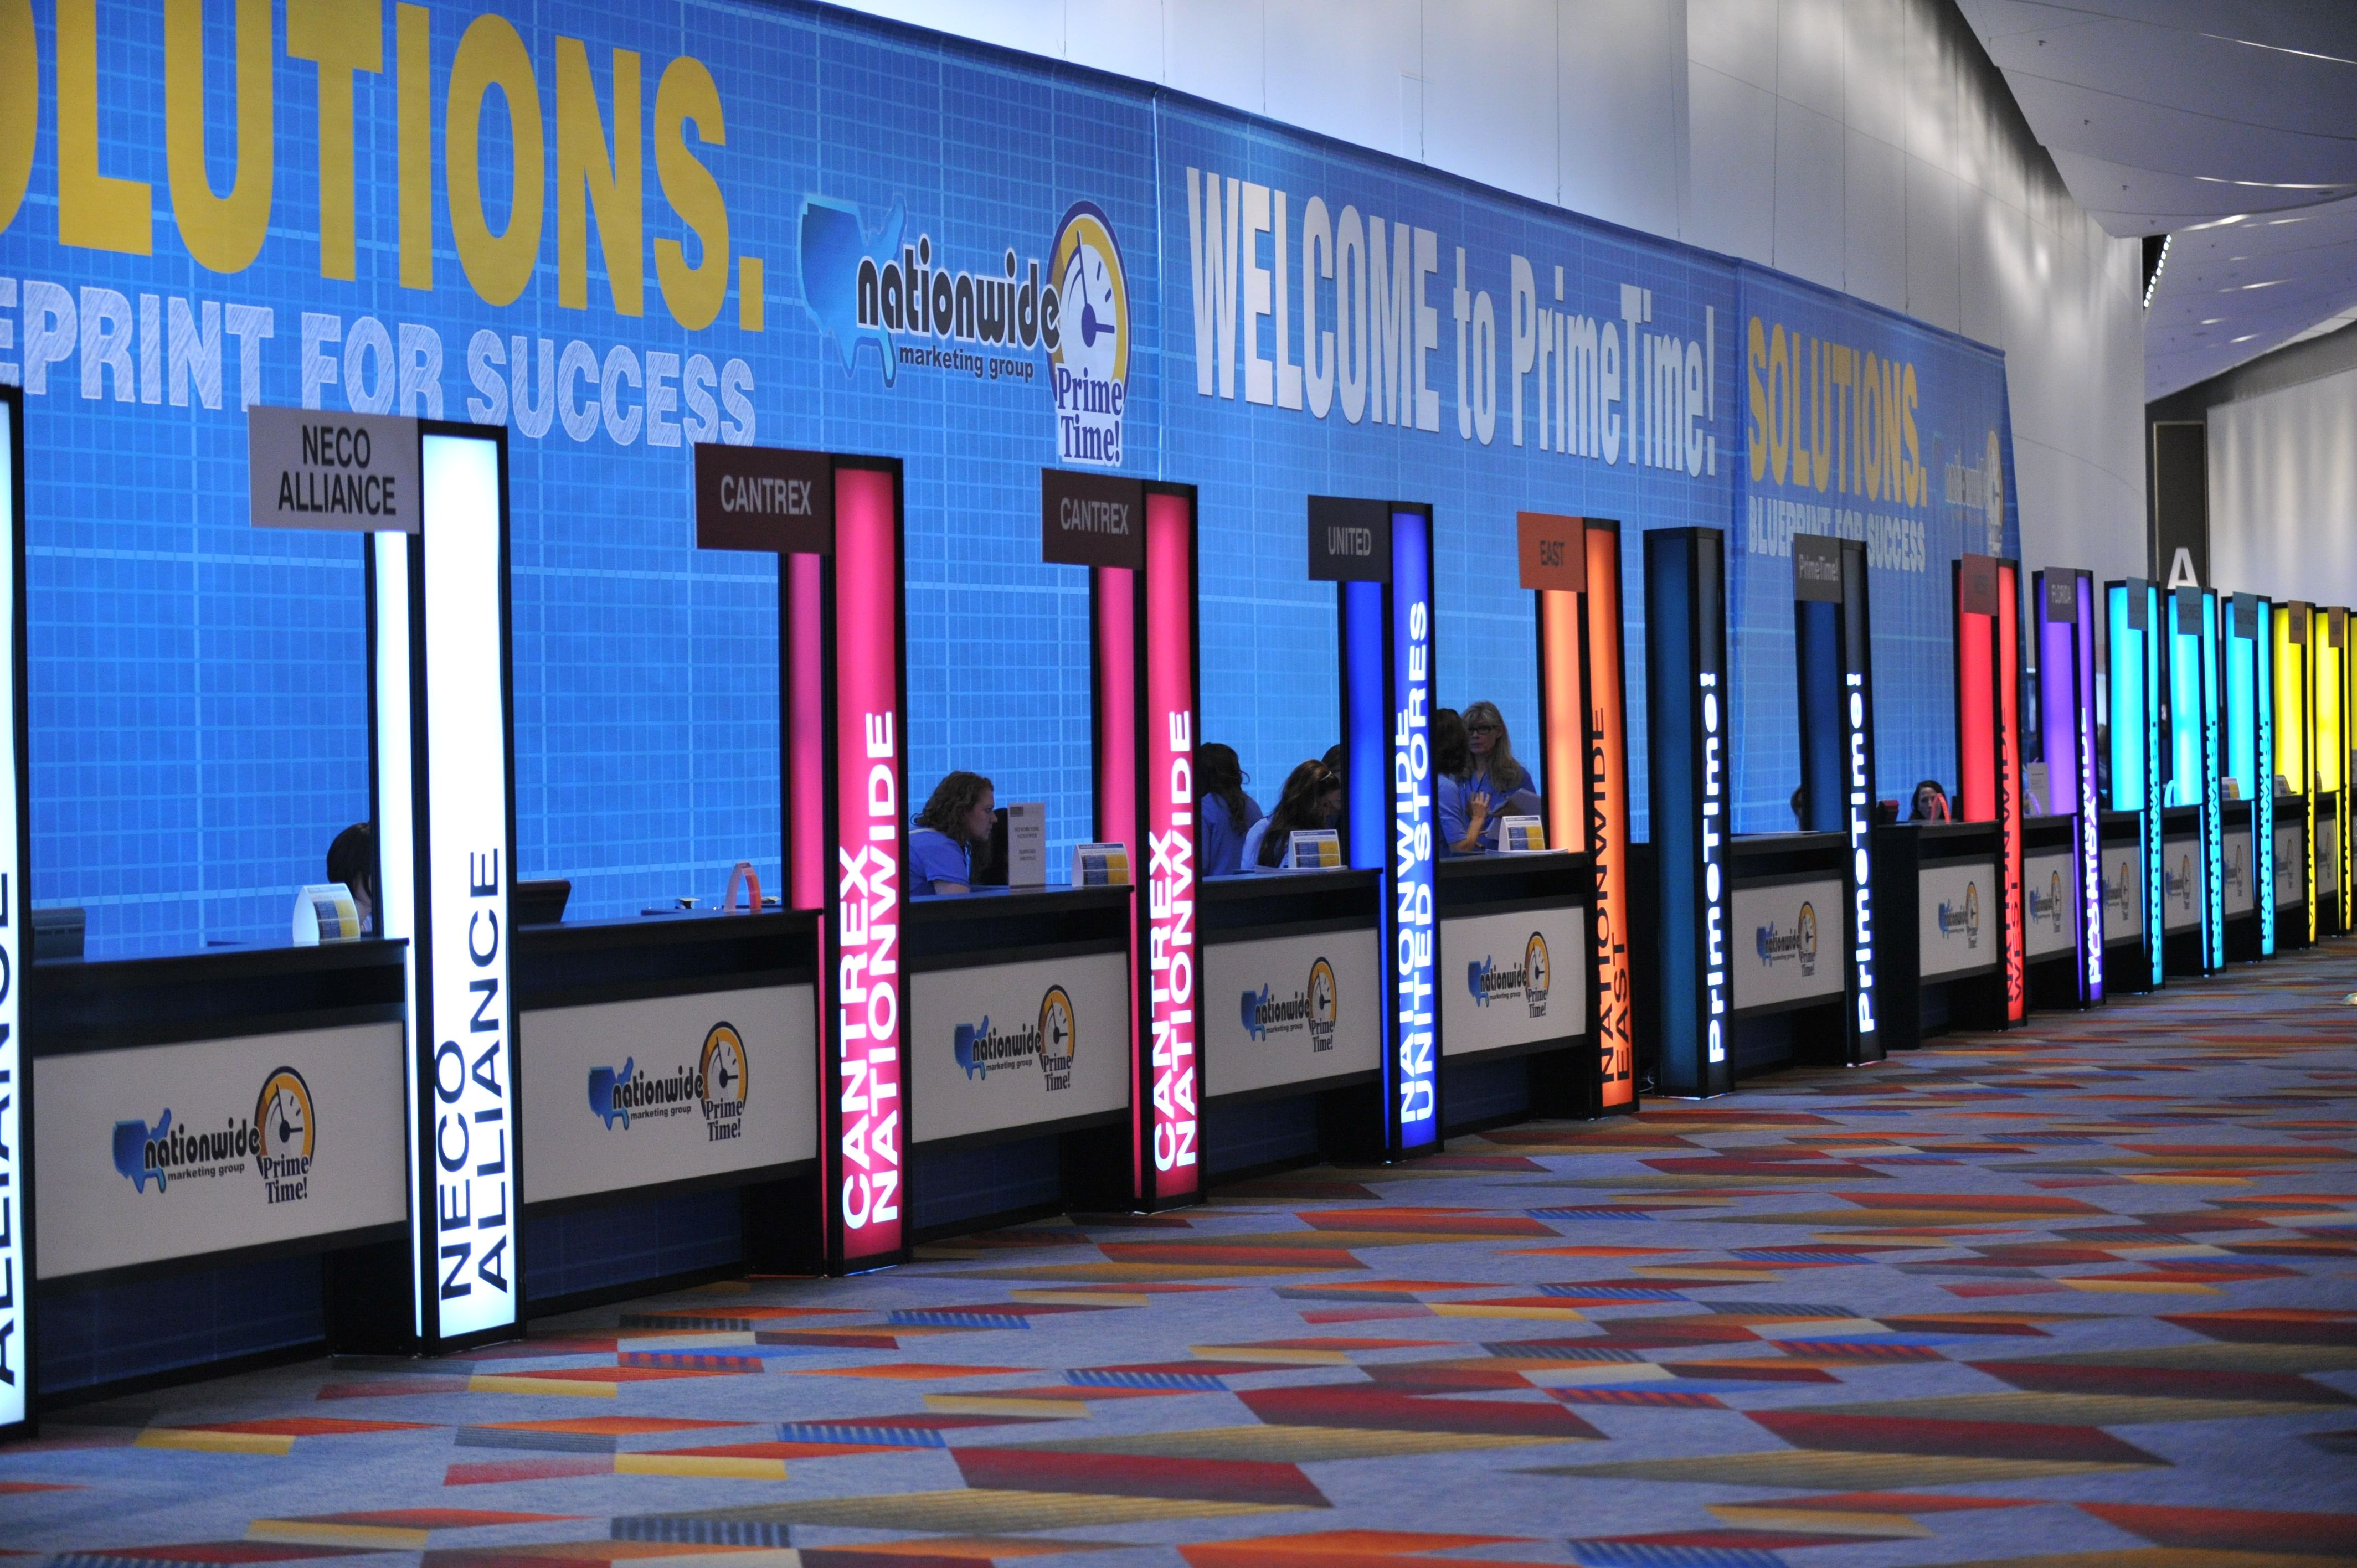 Exhibition Stand Lighting Nz : Registration counter at nationwide marketing group s